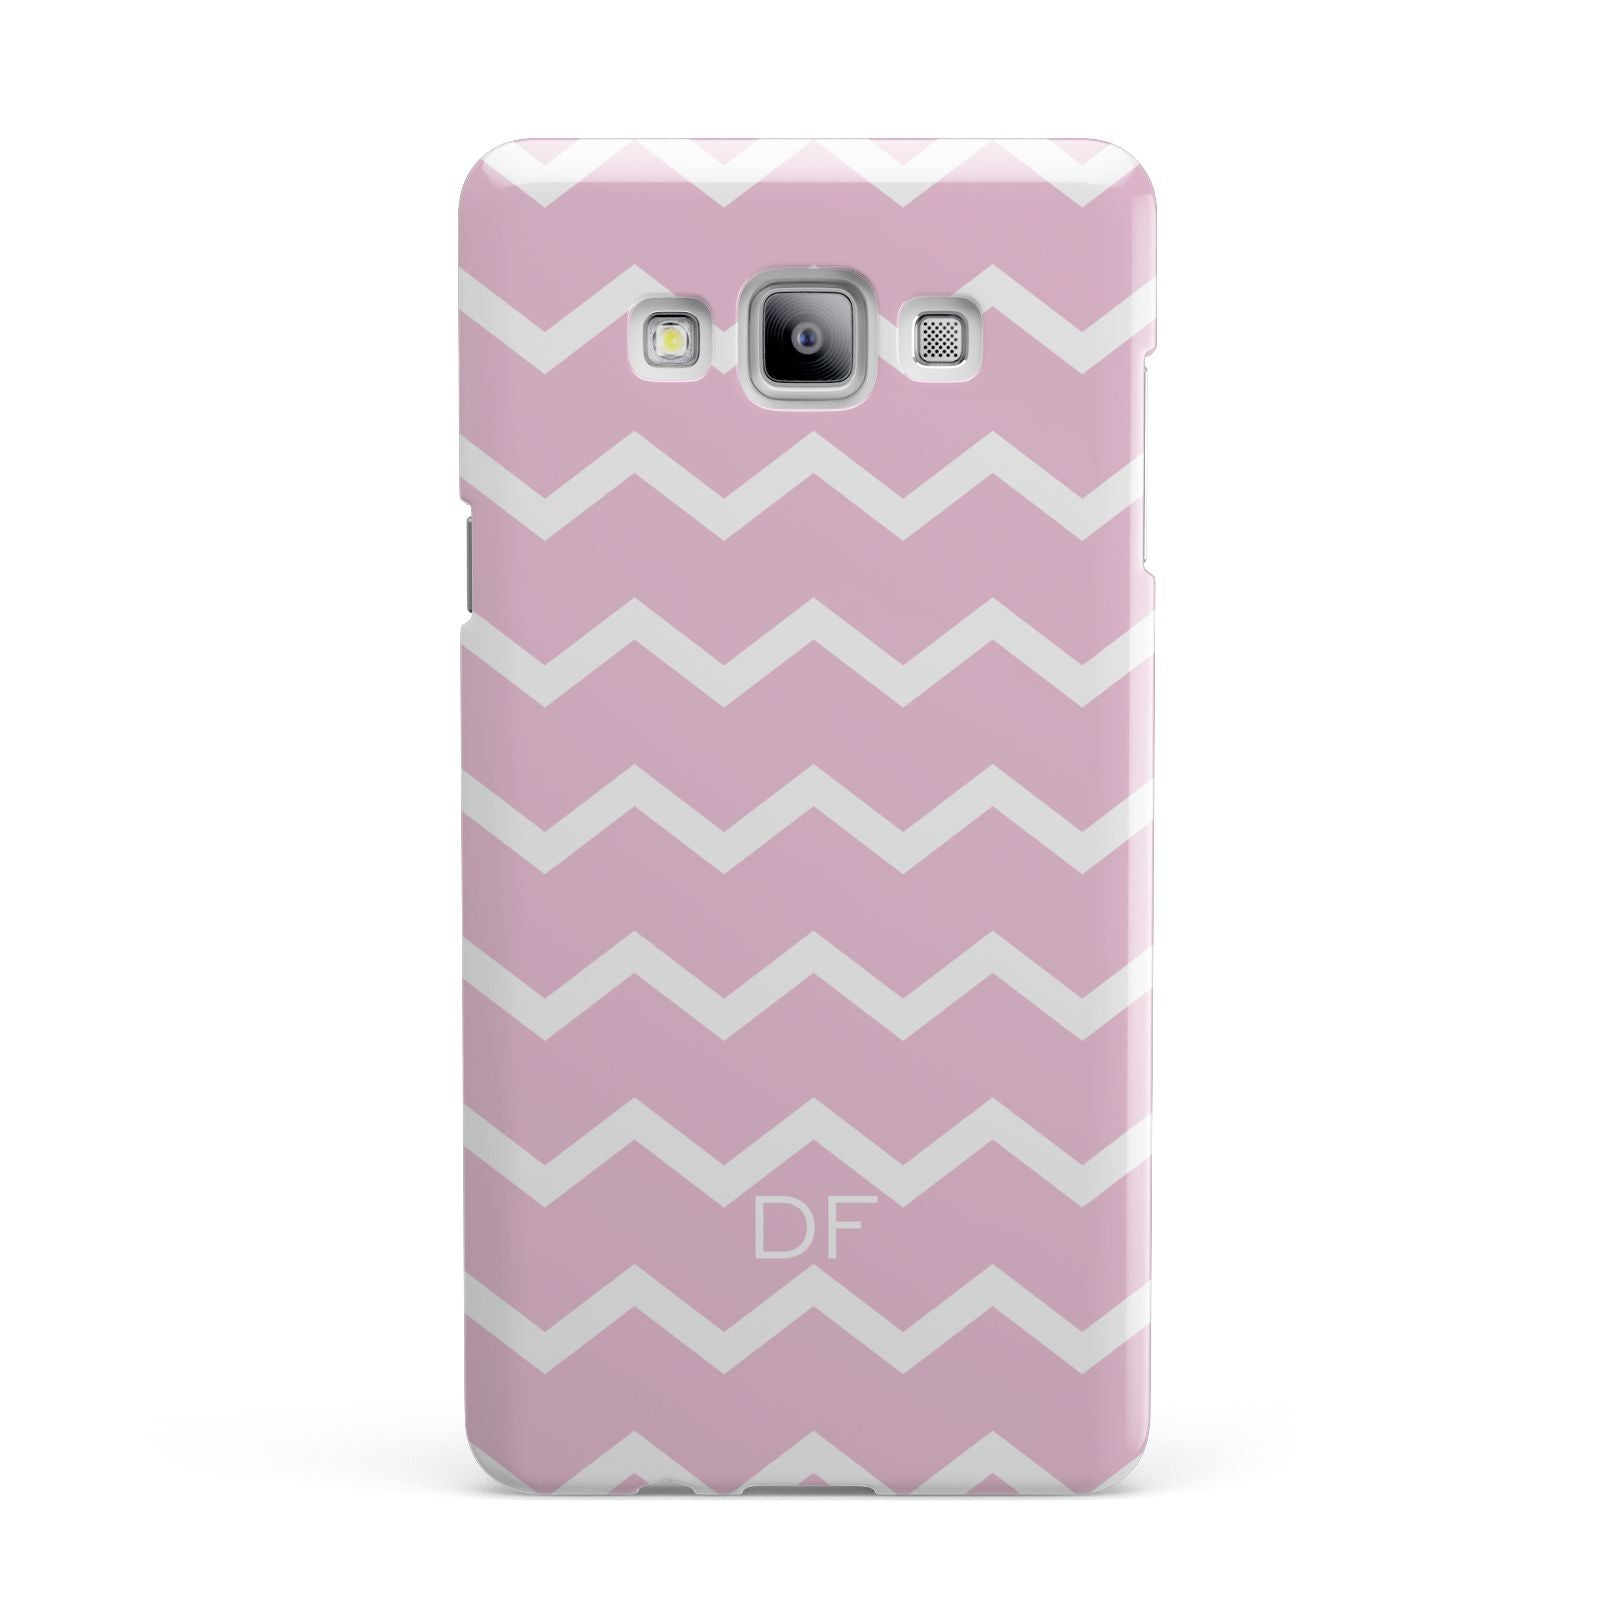 Personalised Chevron Pink Samsung Galaxy A7 2015 Case